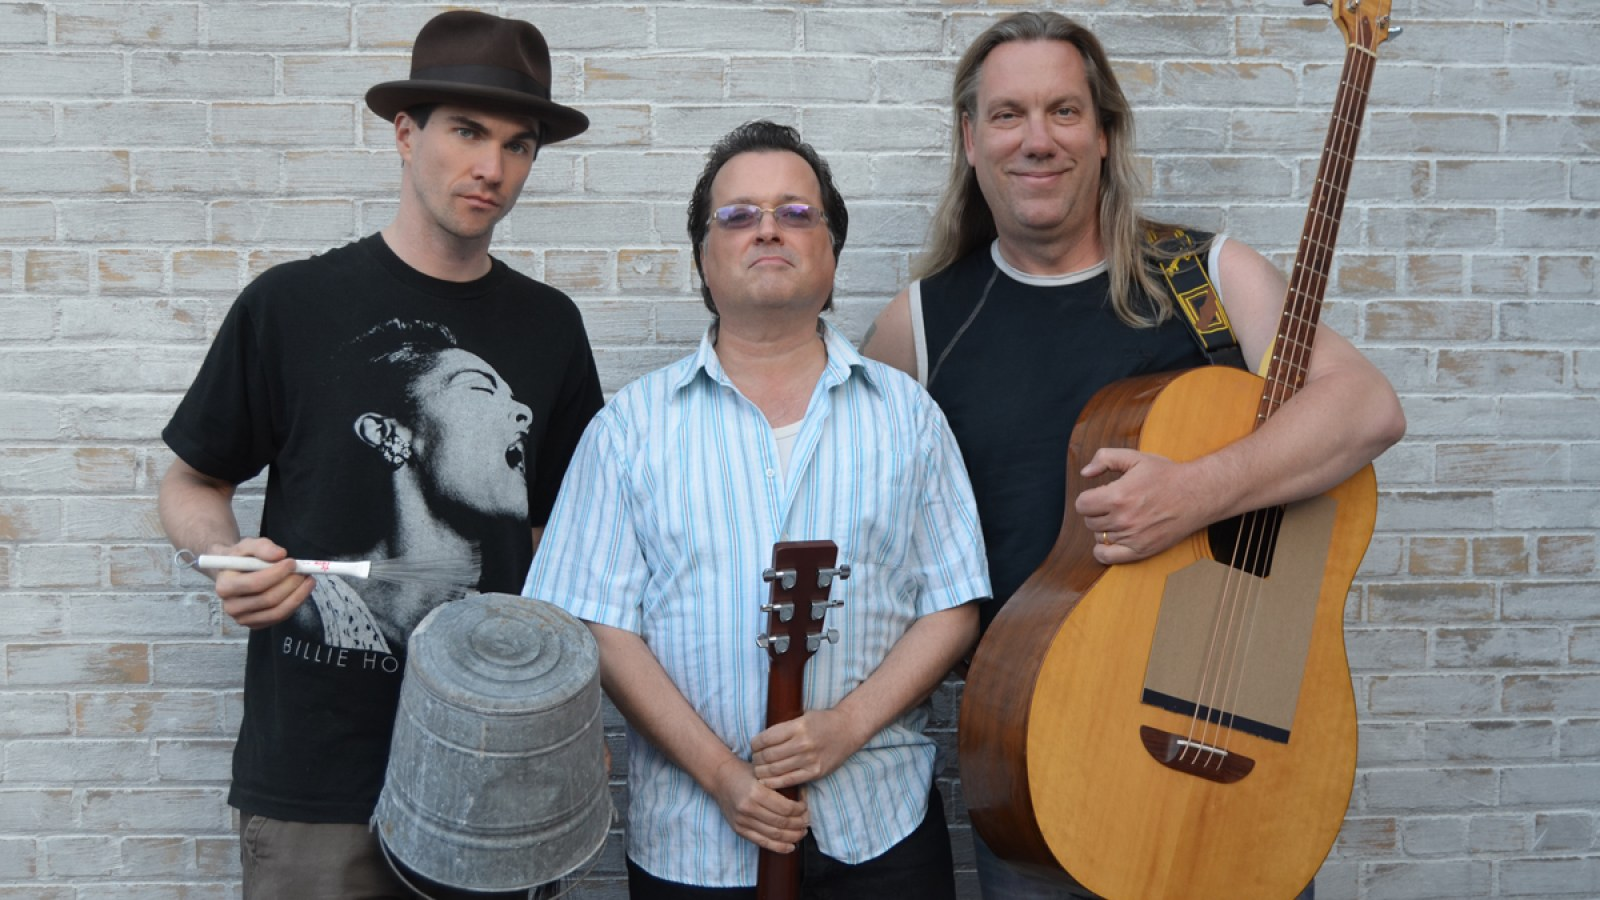 violent femmes web Let Me Go On: Violent Femmes on Breaking Their 16 Year Studio Silence